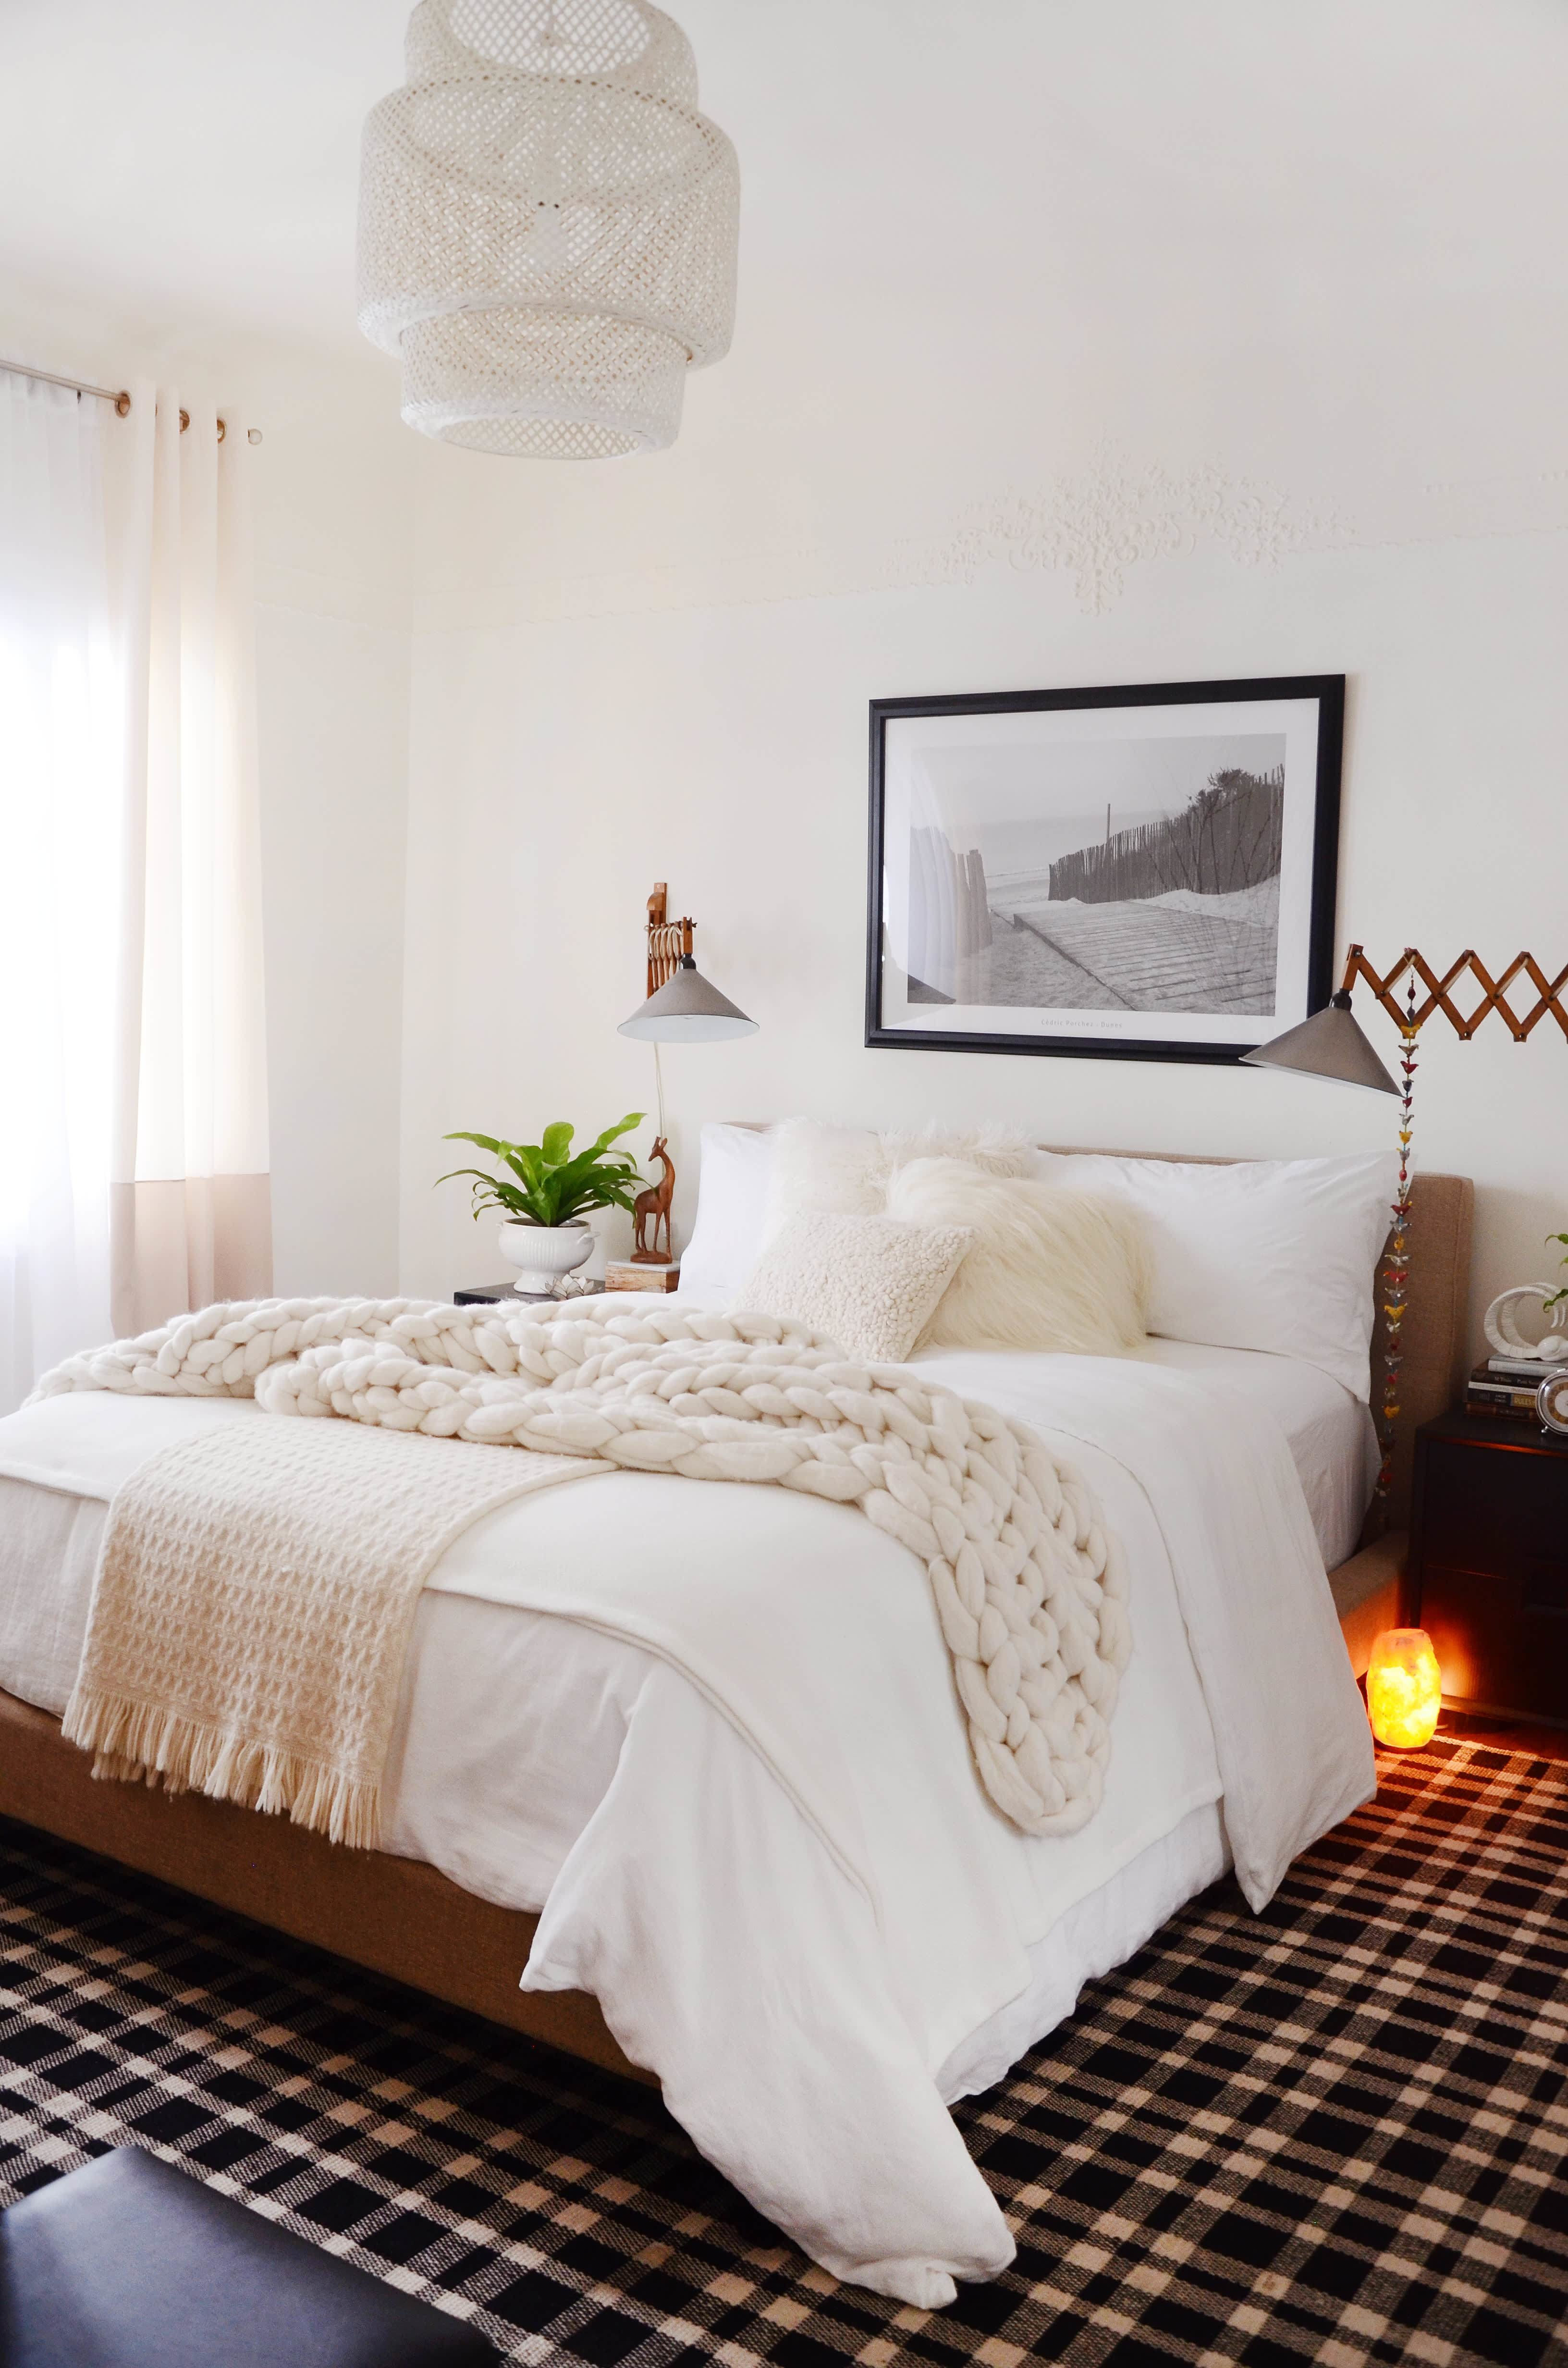 Best 10 Ways To Make A Big Bedroom Feel Cozy Apartment Therapy With Pictures